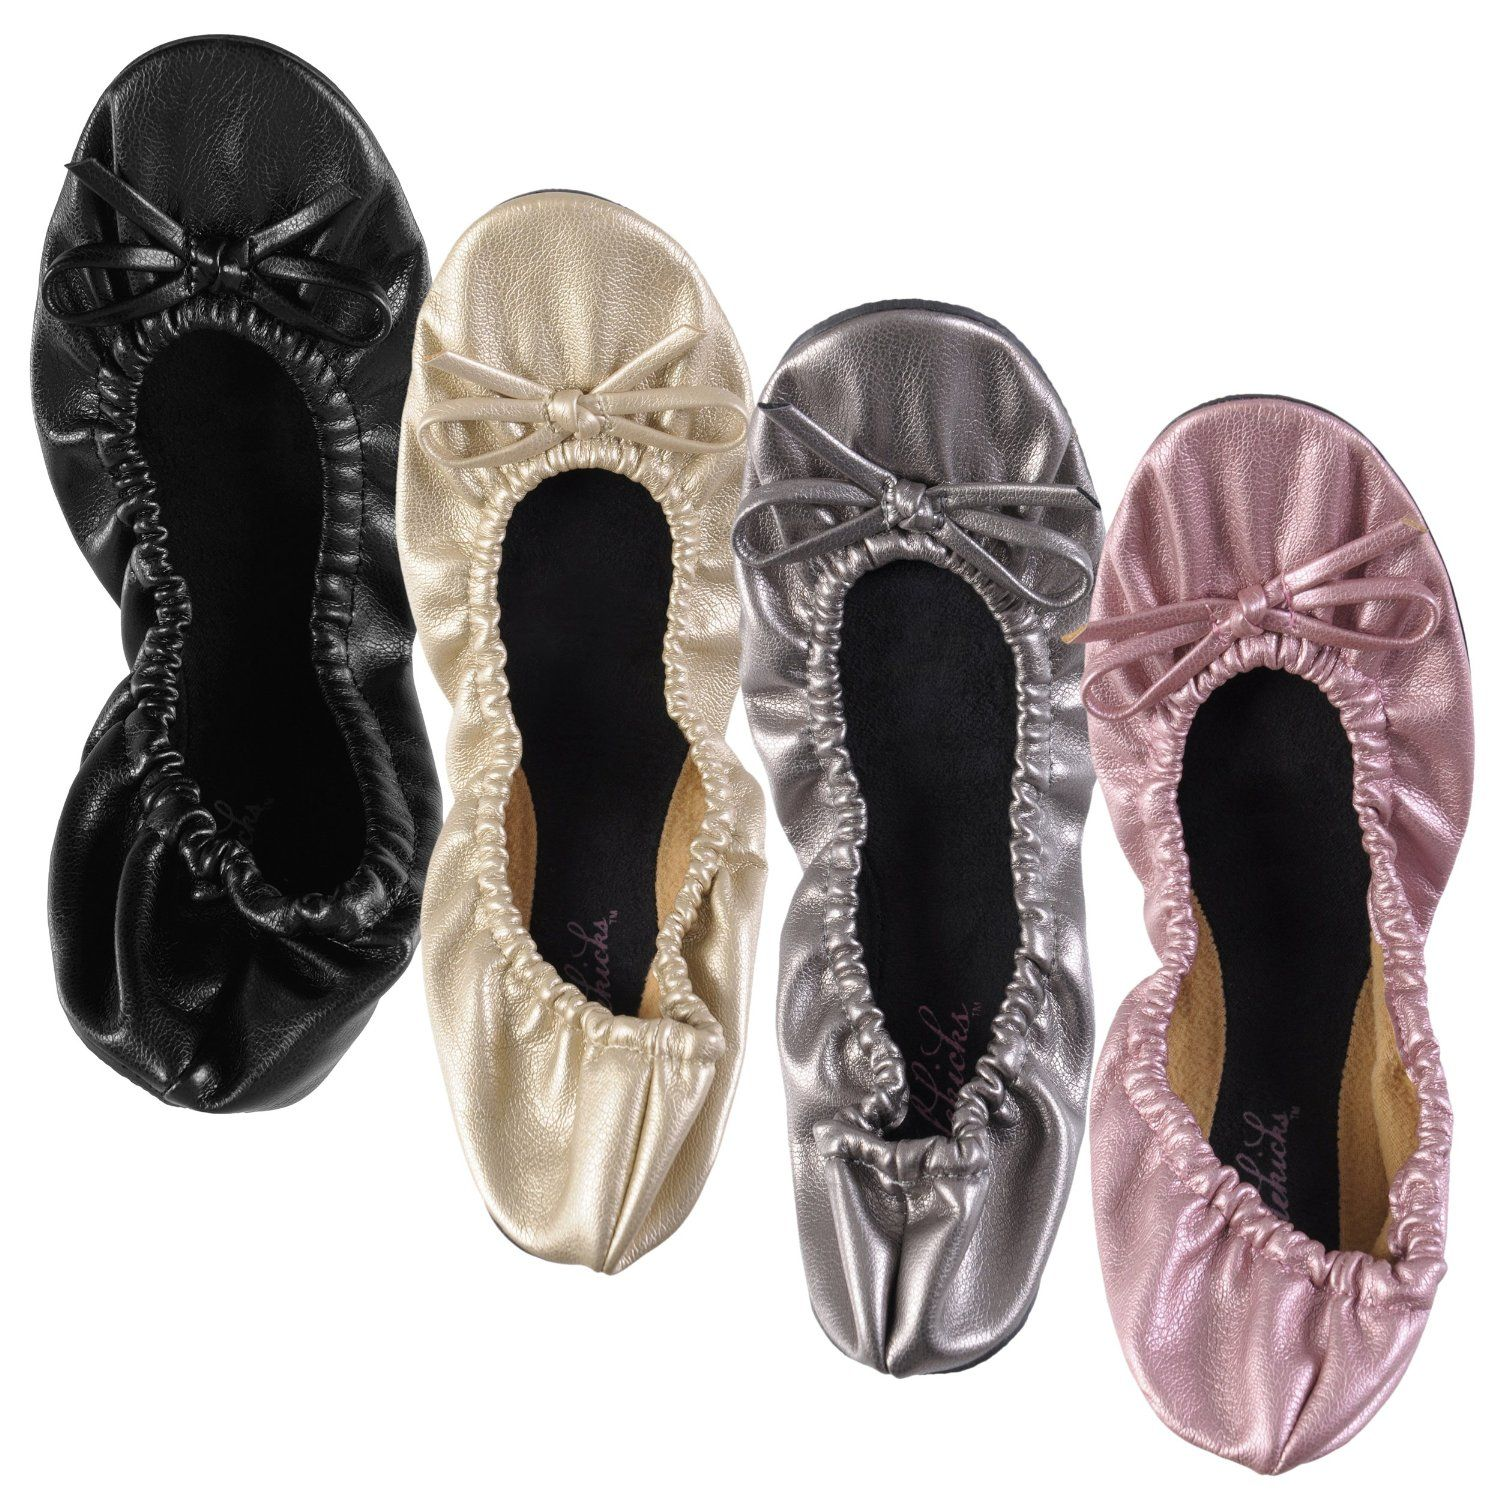 Portable Ballet Flat Shoes